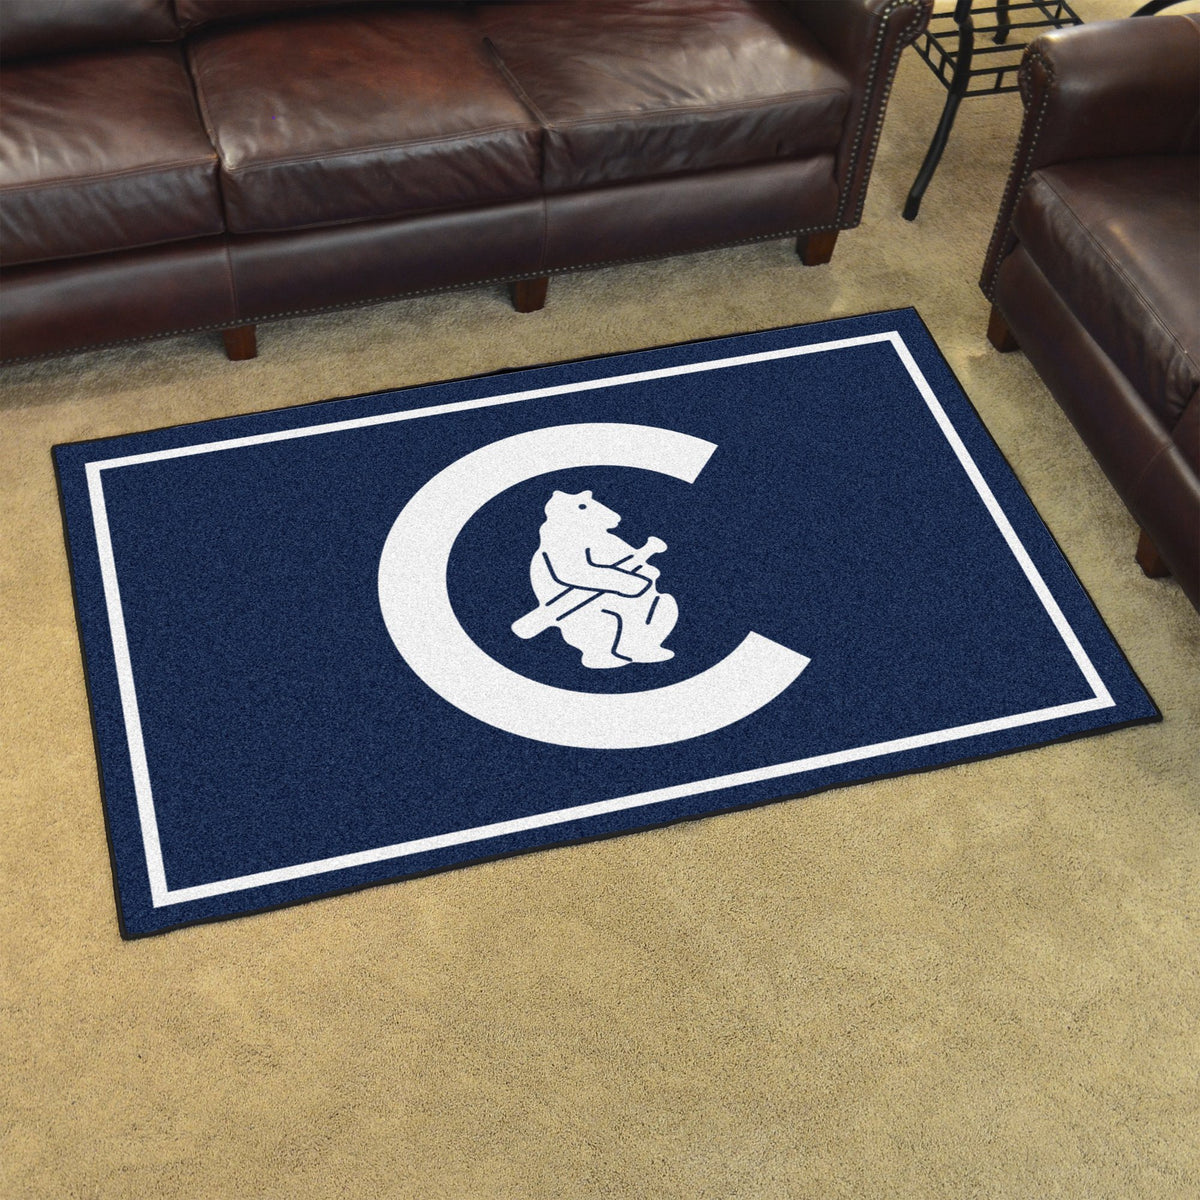 MLB Retro - 4' x 6' Rug MLB Retro Mats, Plush Rugs, 4x6 Rug, MLB, Home Fan Mats Chicago Cubs